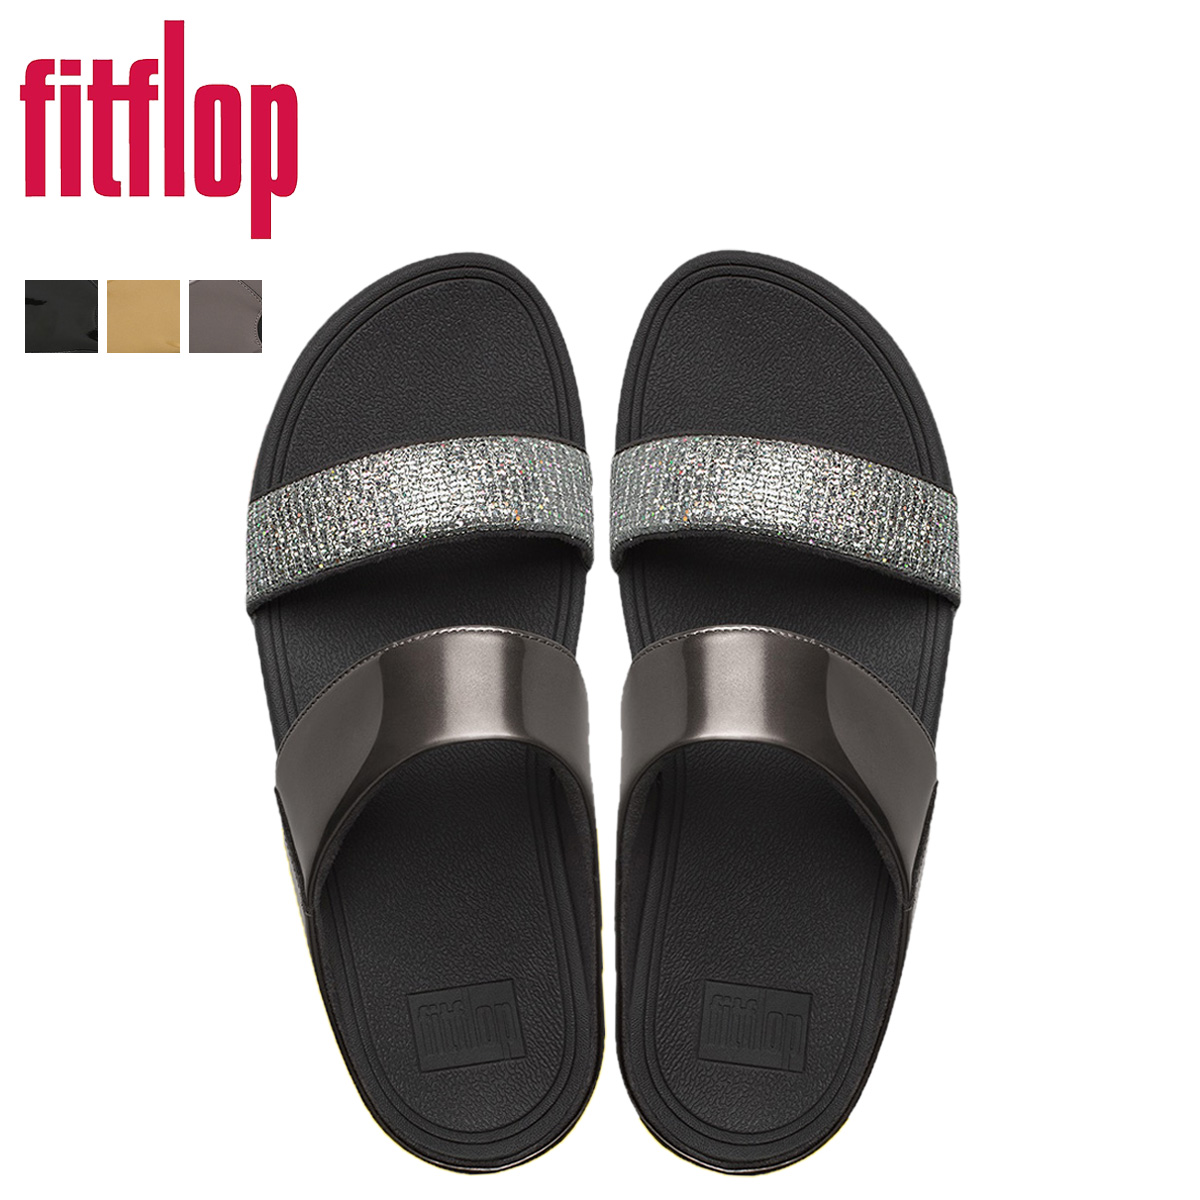 9c779a3ea07 ... the density put a diverse focus on the fit flop Sandals first. New  generation footwear brand revolutionized the modern shoe industry does not  understand ...